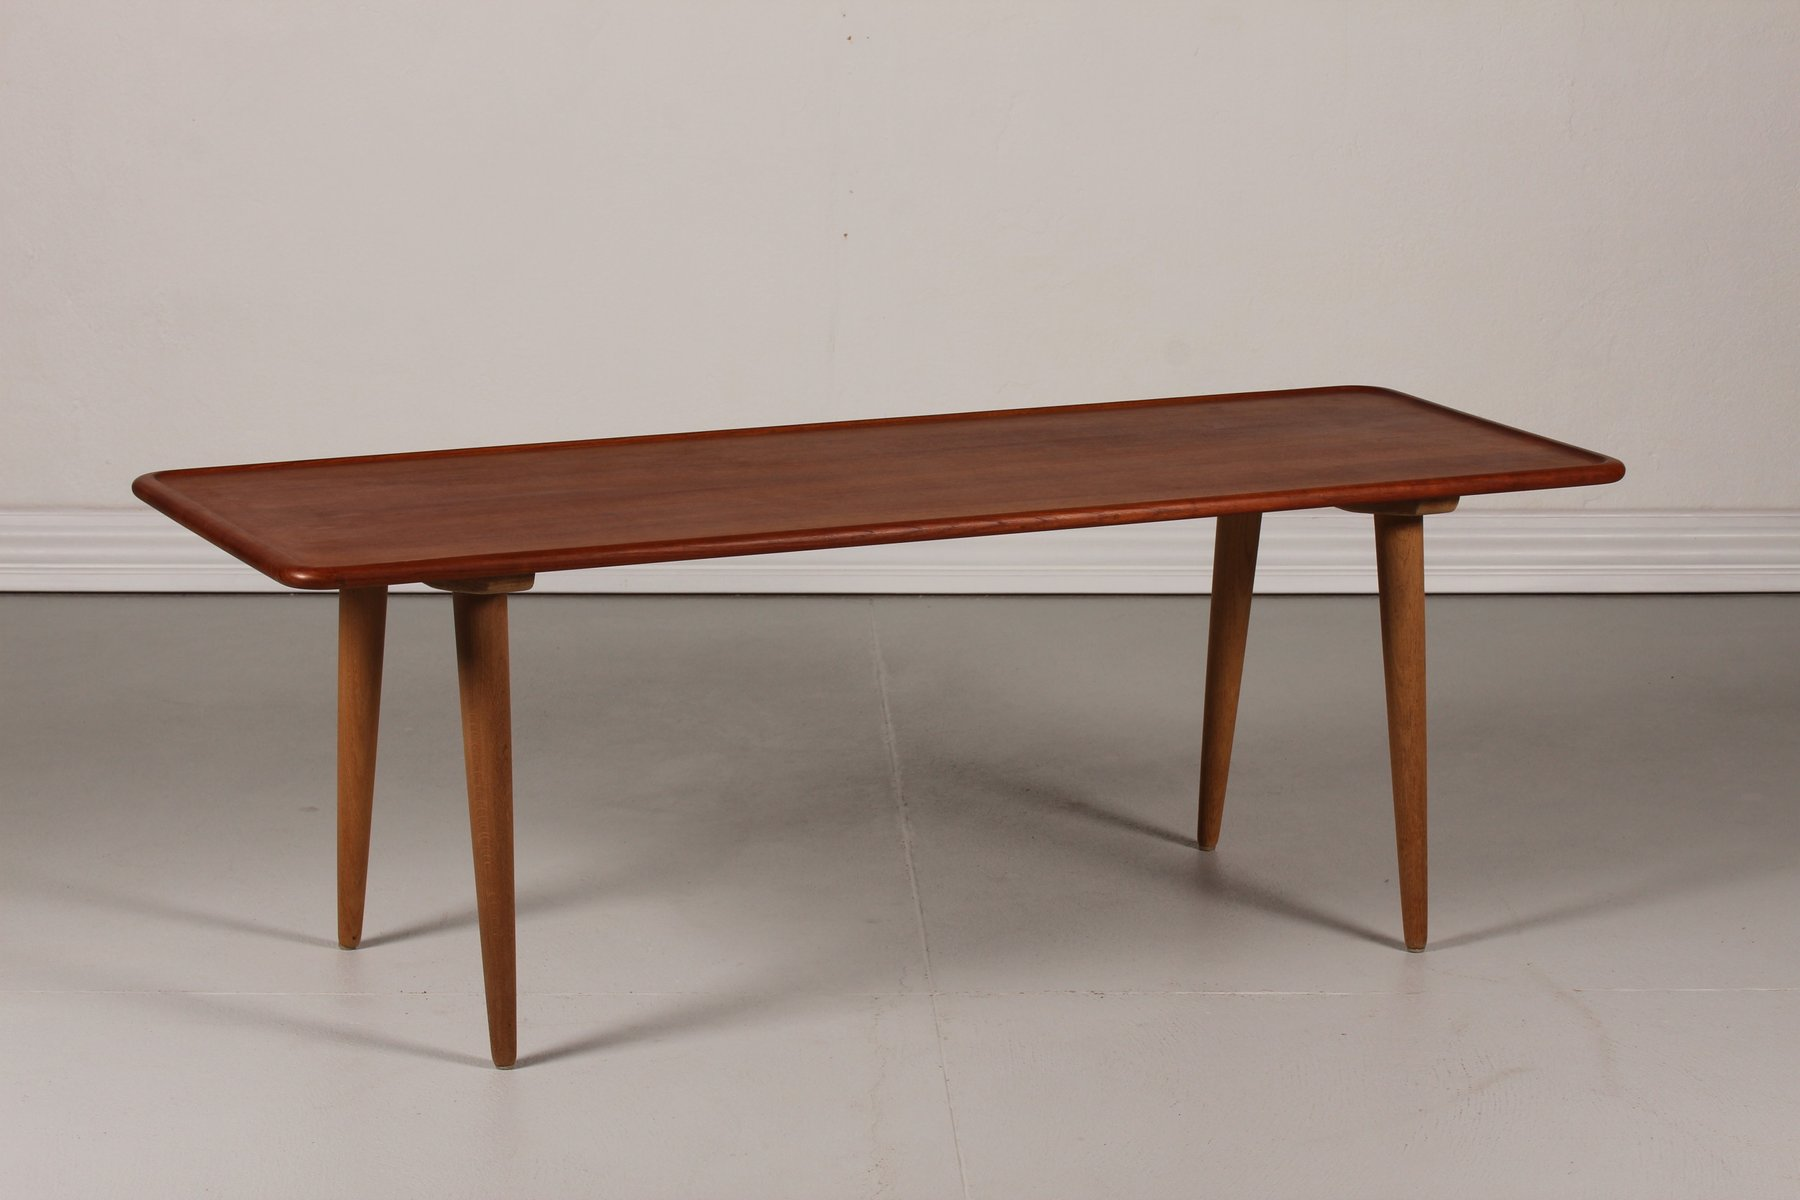 teak coffee table. danish at 11 teak coffee table by hans j. wegner for andreas tuck, 1950s sale at pamono a